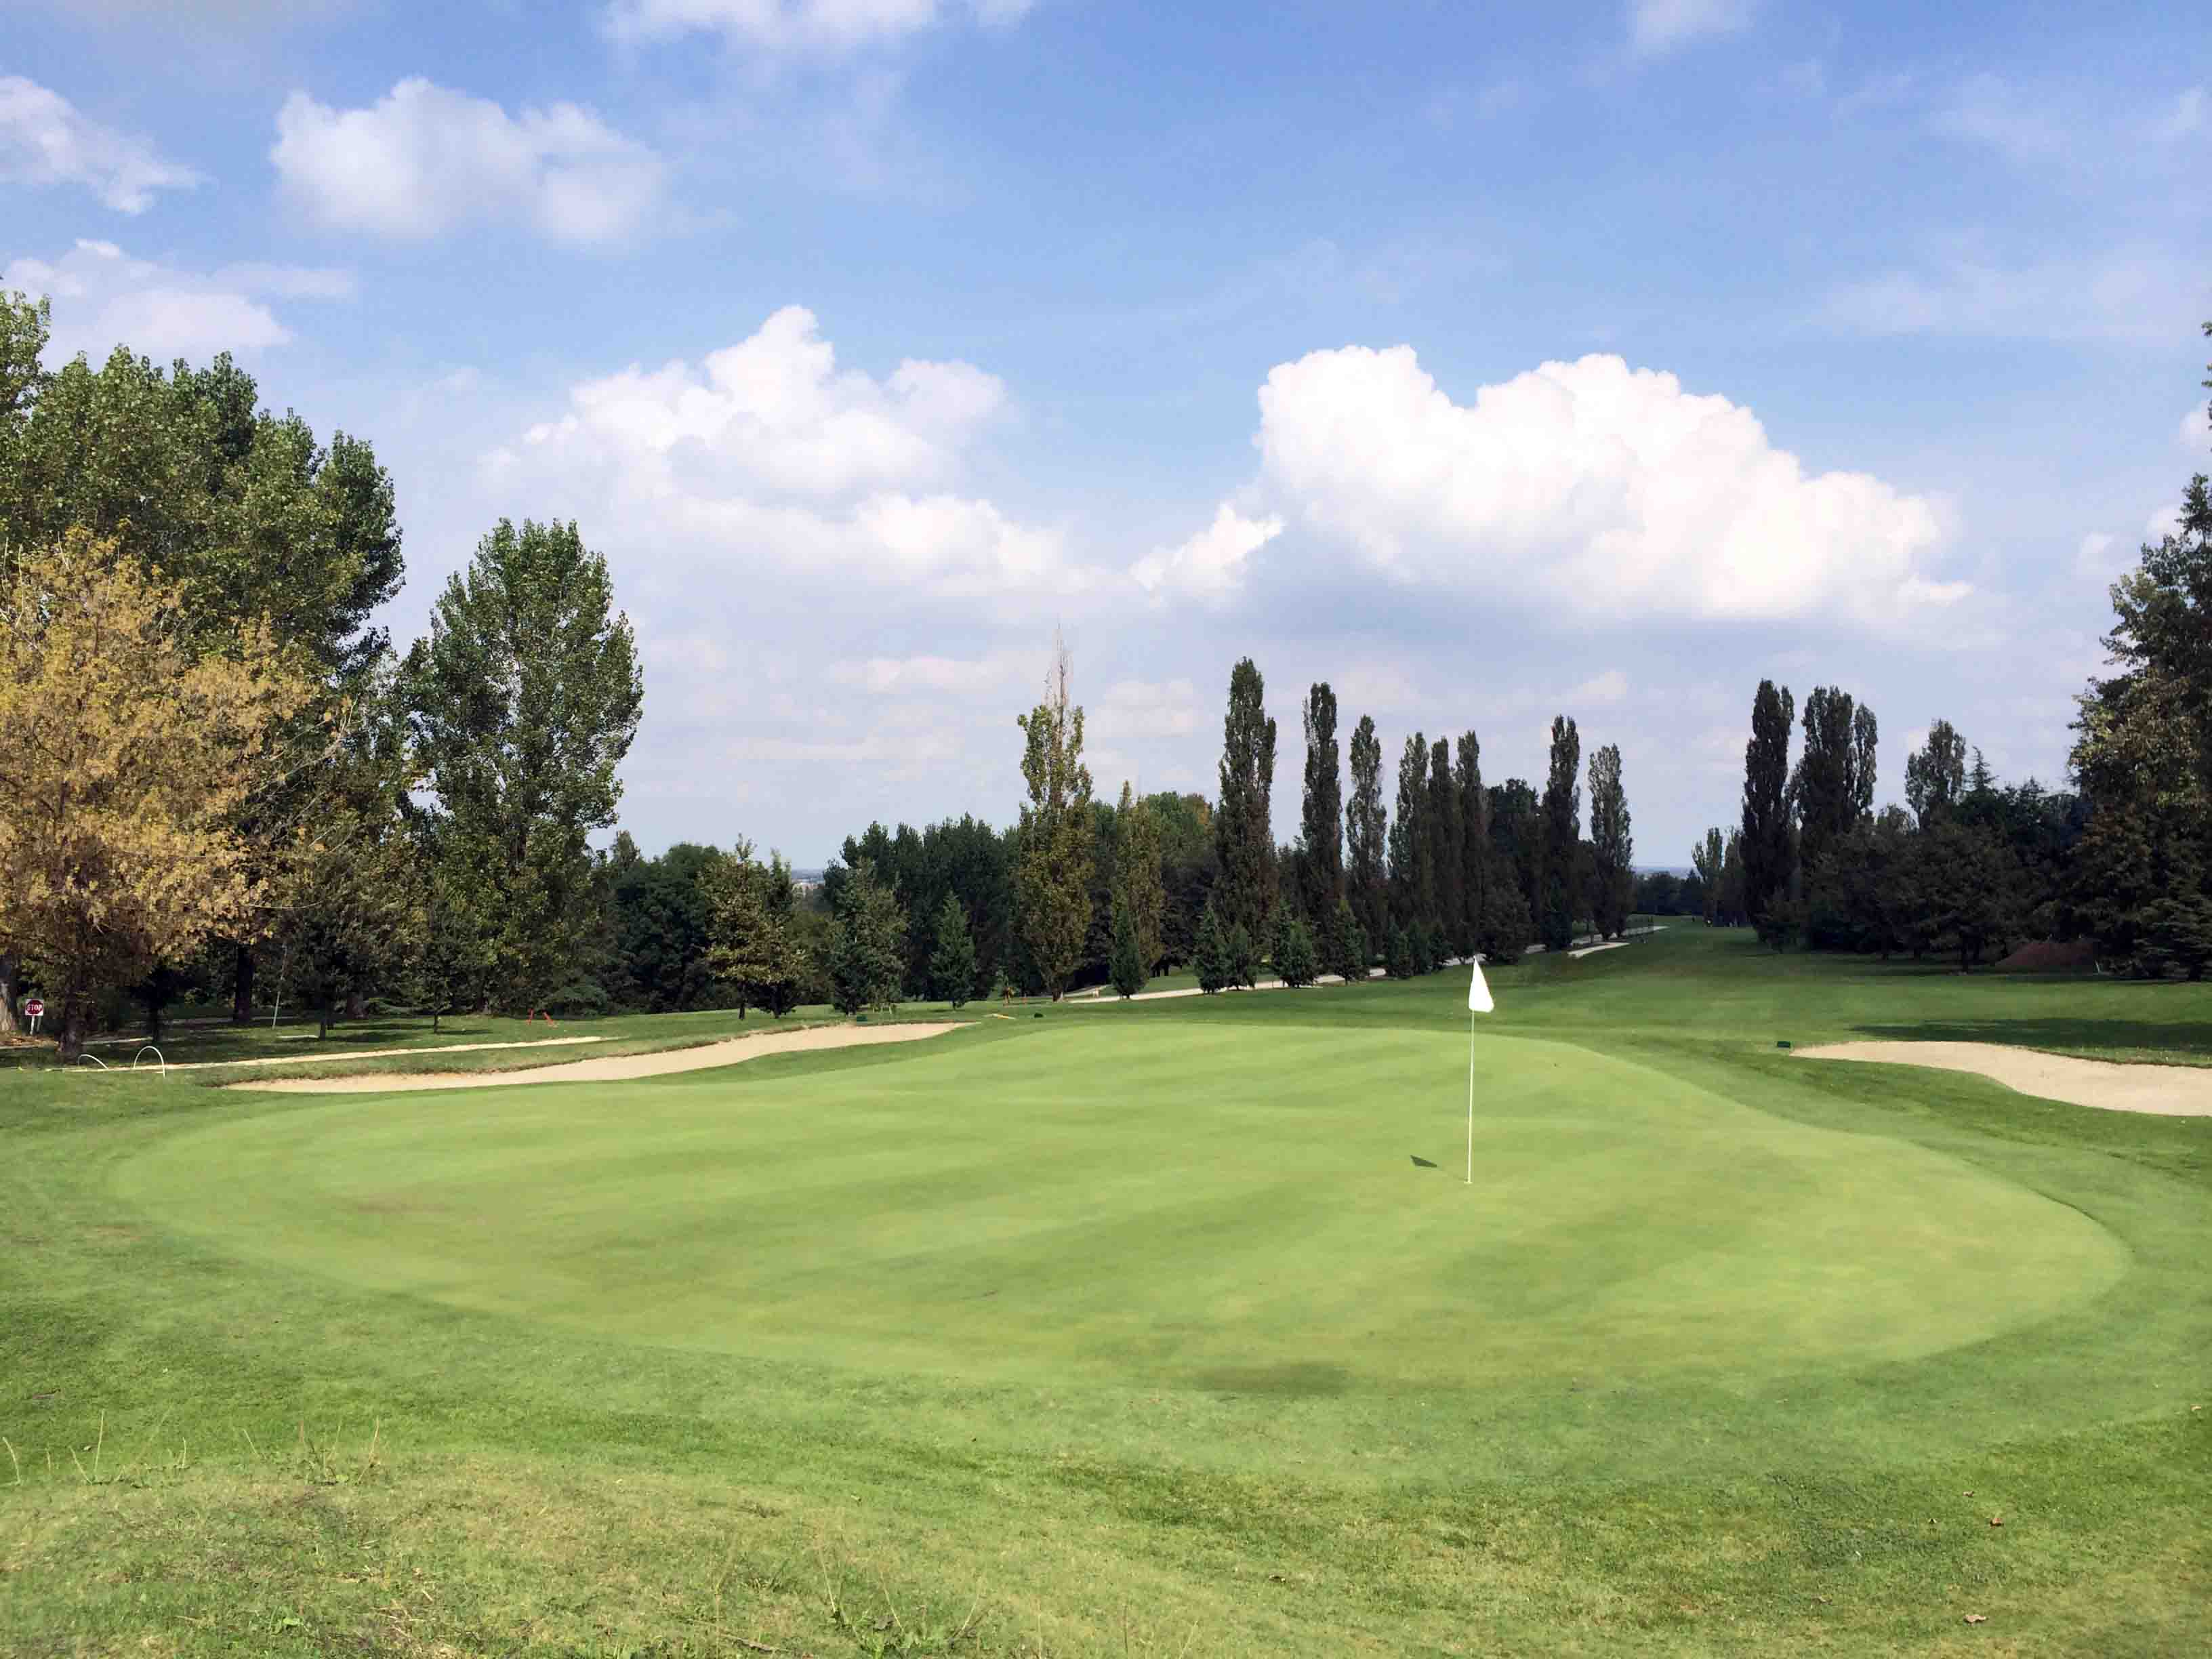 Round at Golf Club Bologna in Bologna, Italy